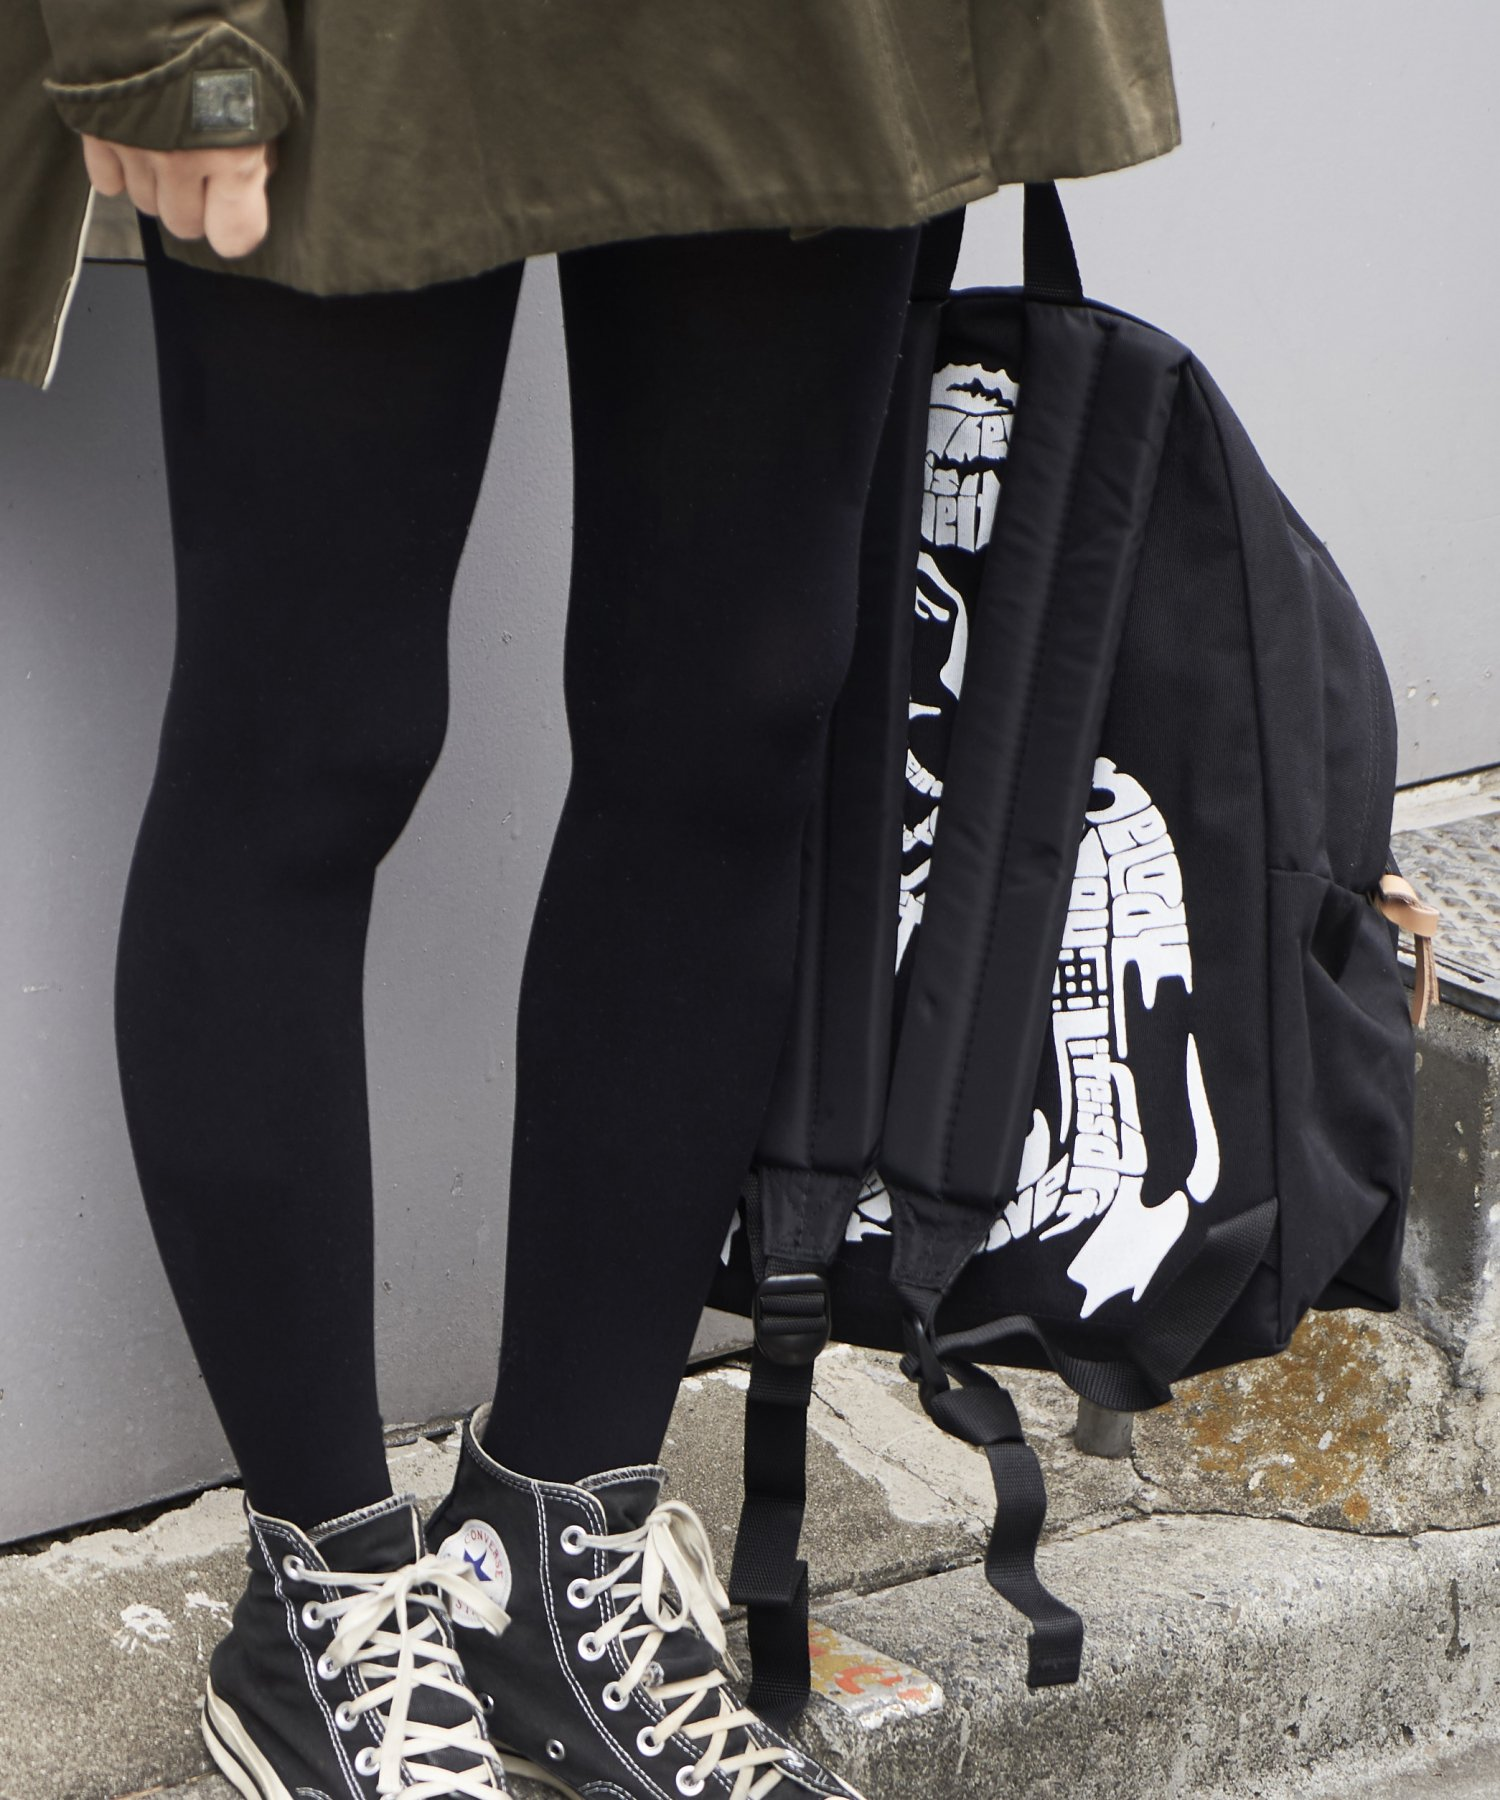 <img class='new_mark_img1' src='https://img.shop-pro.jp/img/new/icons15.gif' style='border:none;display:inline;margin:0px;padding:0px;width:auto;' />【REBIRTHPROJECT × EASTPAK 】PADDED PAK'R by REBIRTH PROJECT(5月中旬お届け)